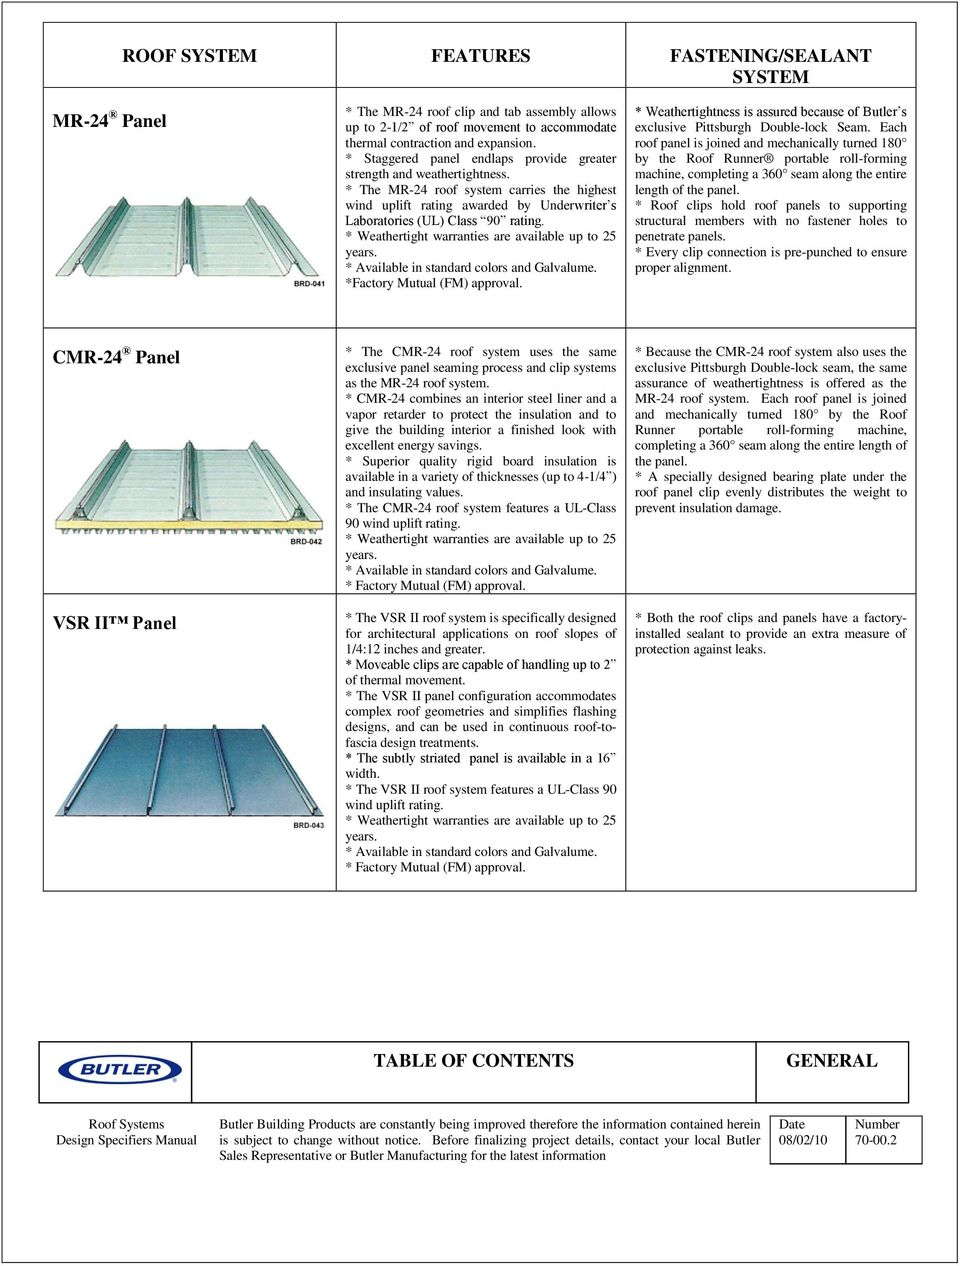 Csi Specifications Mr 24 Roof Details Mr 24 Roof